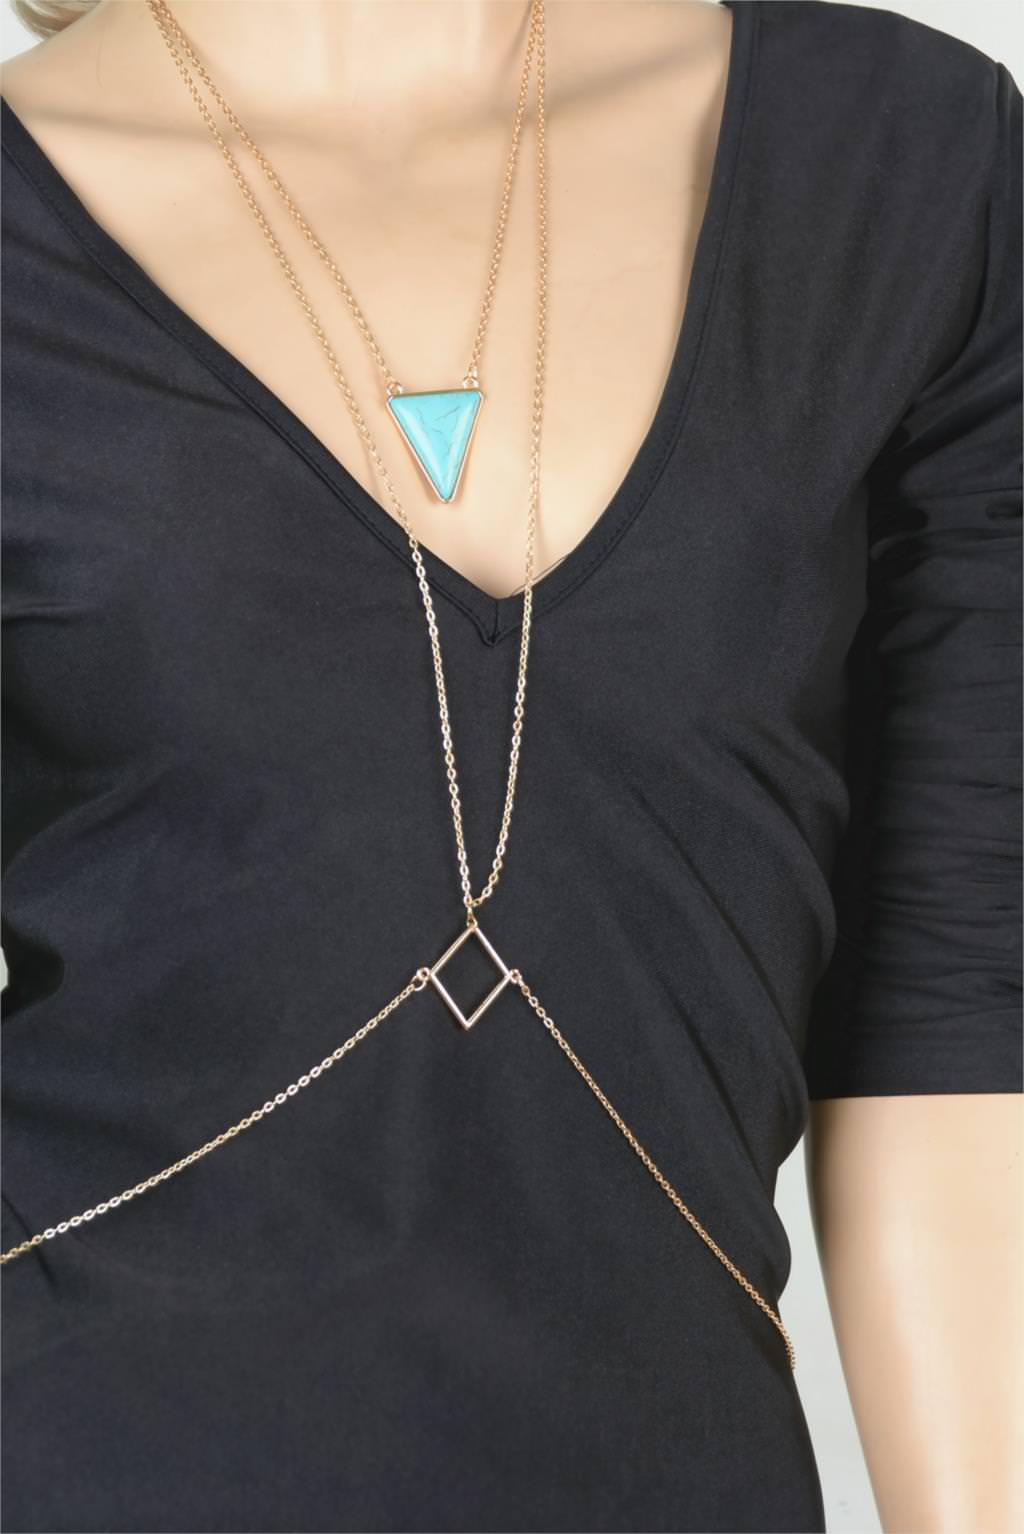 1960-d8f9108f7fbbc30d33bc9b63f8734391 Captivating Body Chain Necklace With Bijoux Triangle Turquoise Stone